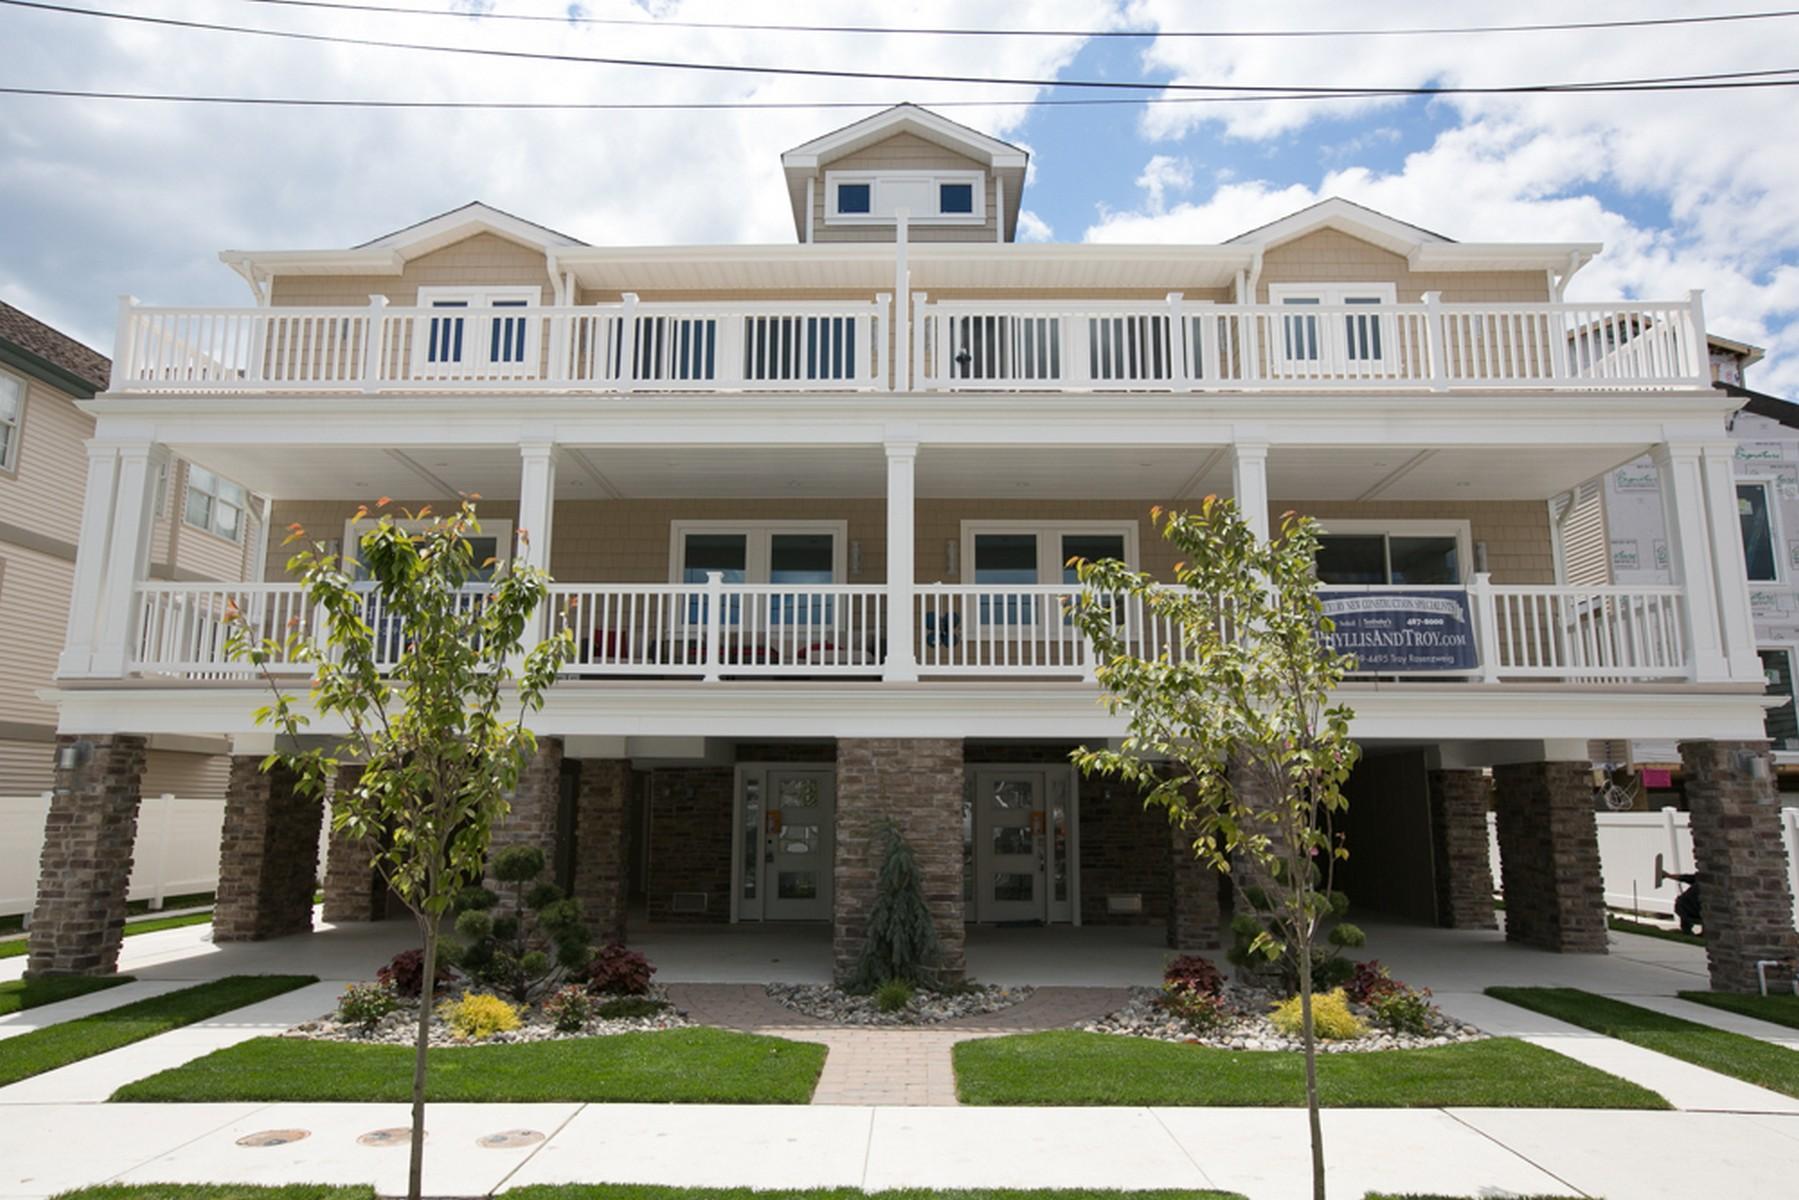 Multi-Family Home for Sale at 114-116 N. Jefferson D 114-116 N. Jefferson UNIT D Margate, New Jersey 08402 United States